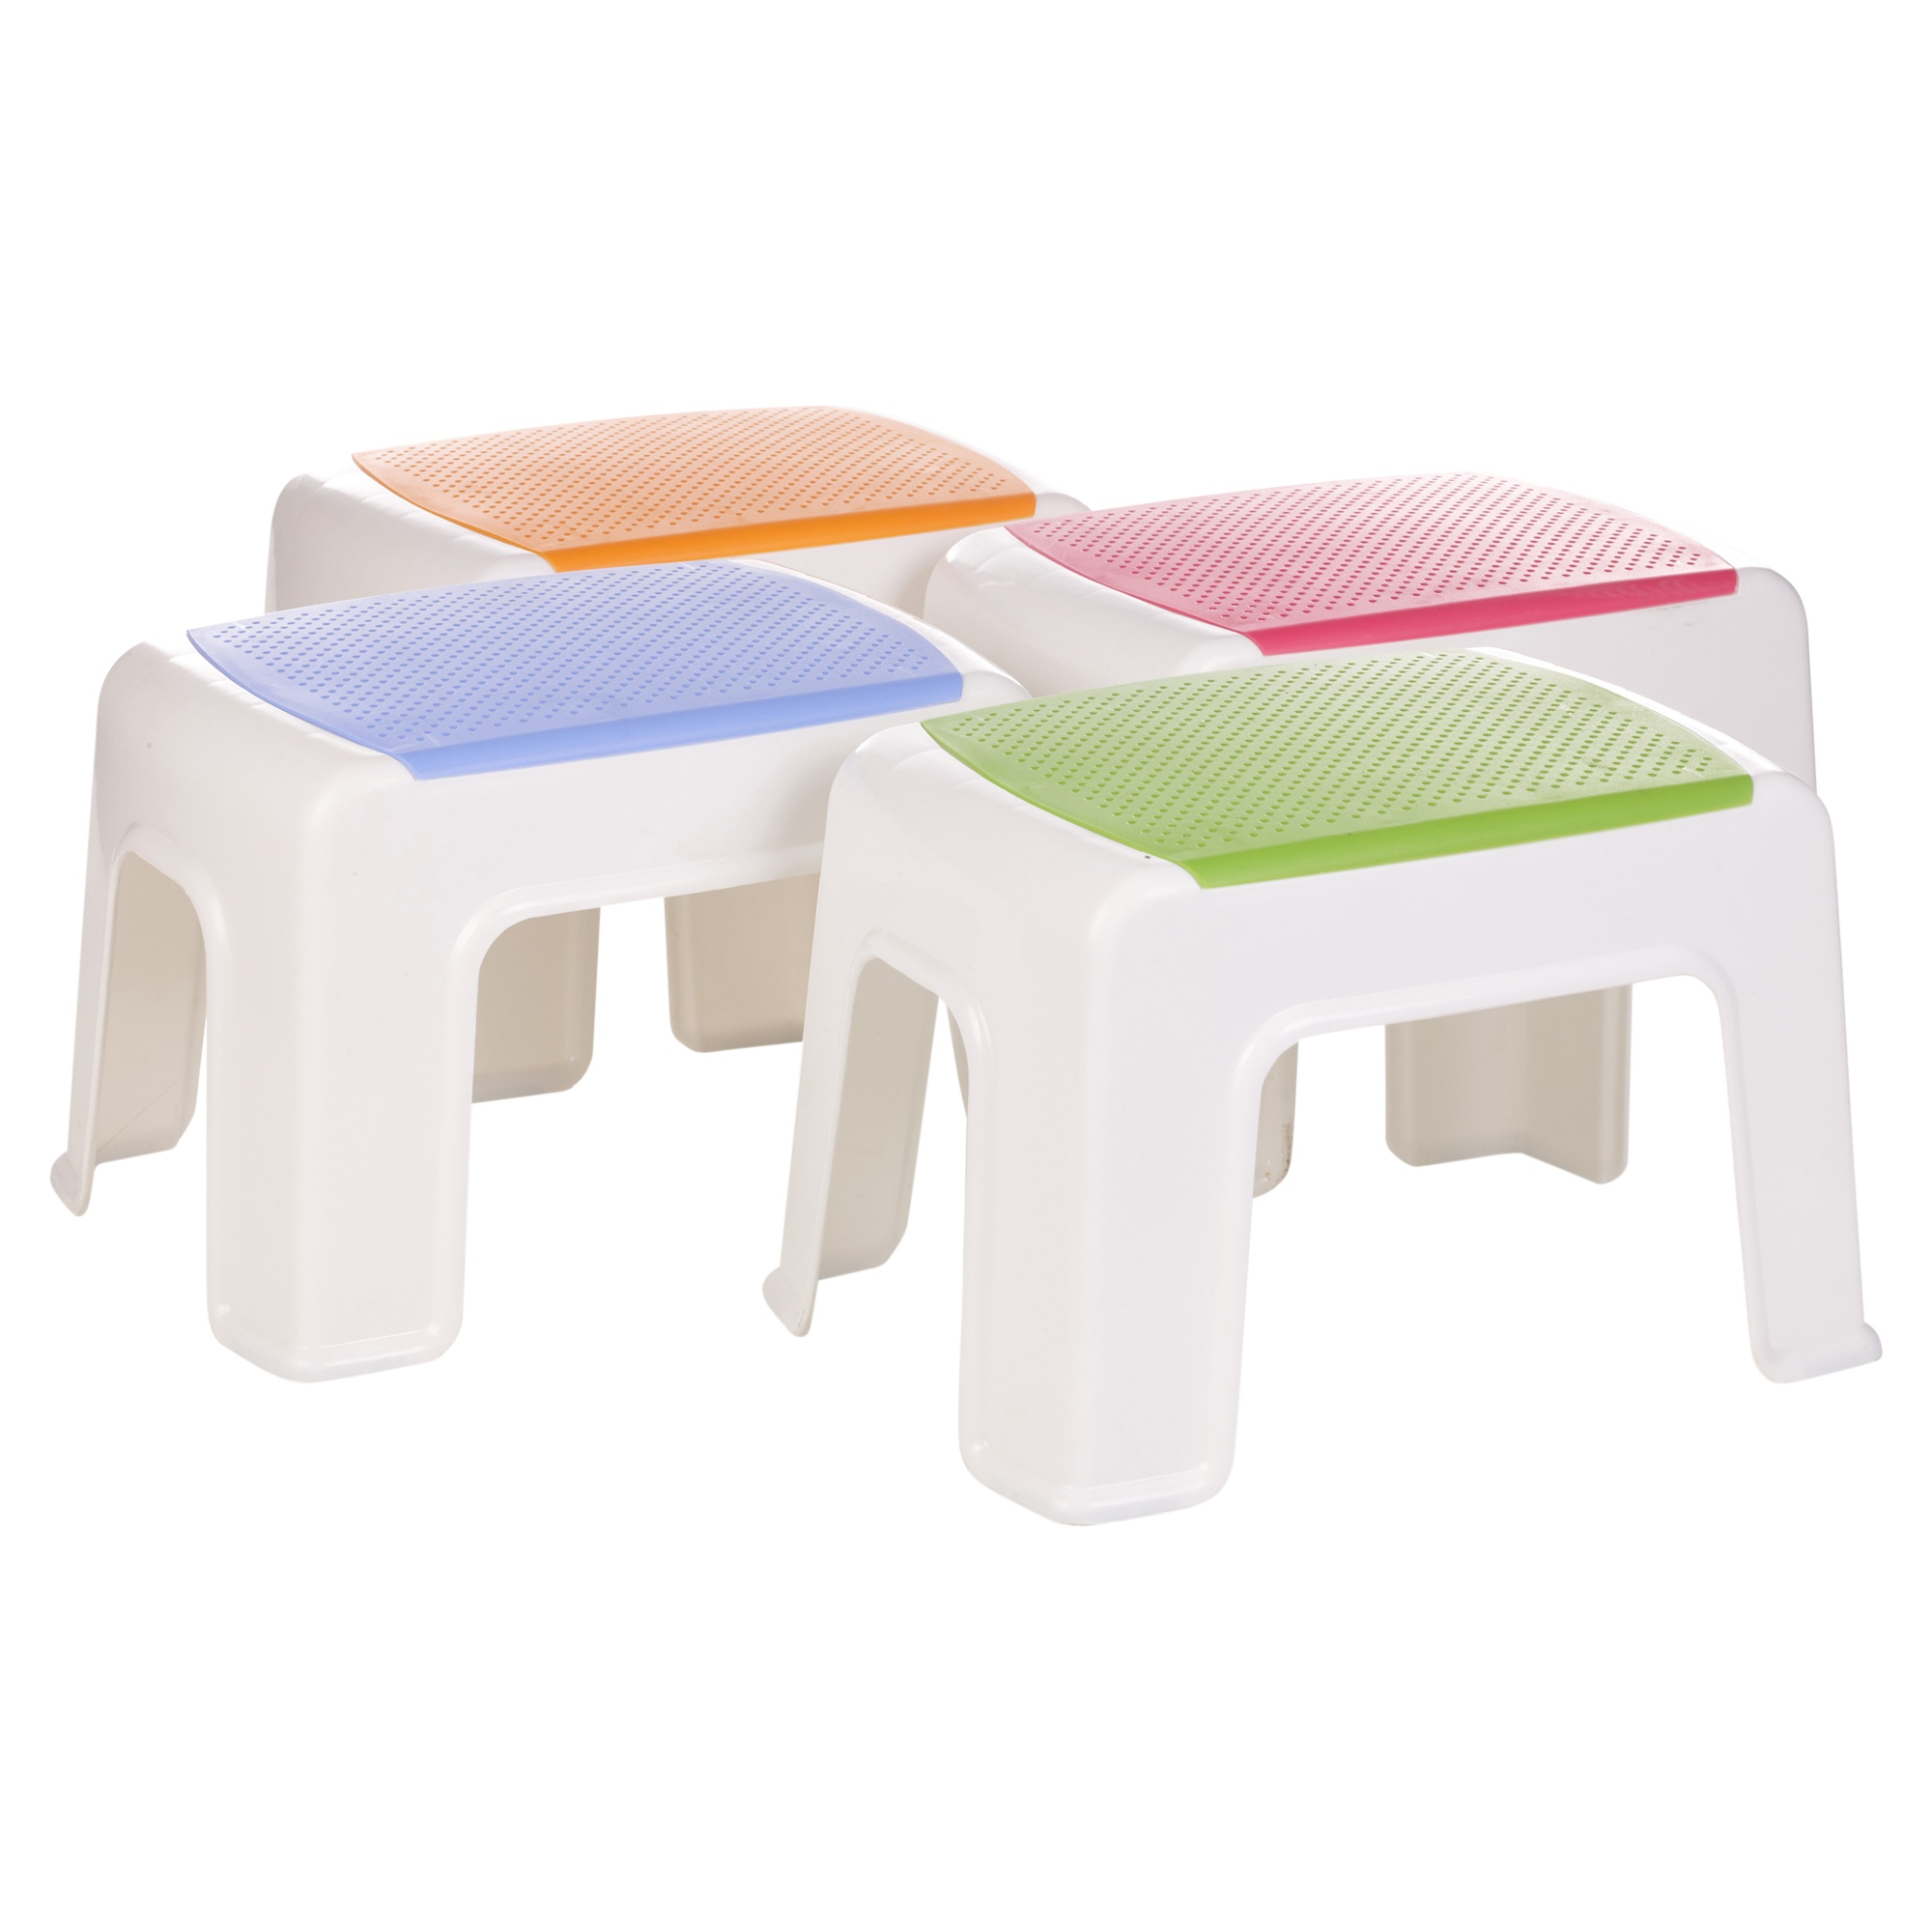 #BD650E  Sturdy Plastic Step Stool Home Kitchen Stacking Footstool Kids NEW with 2000x2000 px of Recommended Plastic Stackable Stools 20002000 save image @ avoidforclosure.info